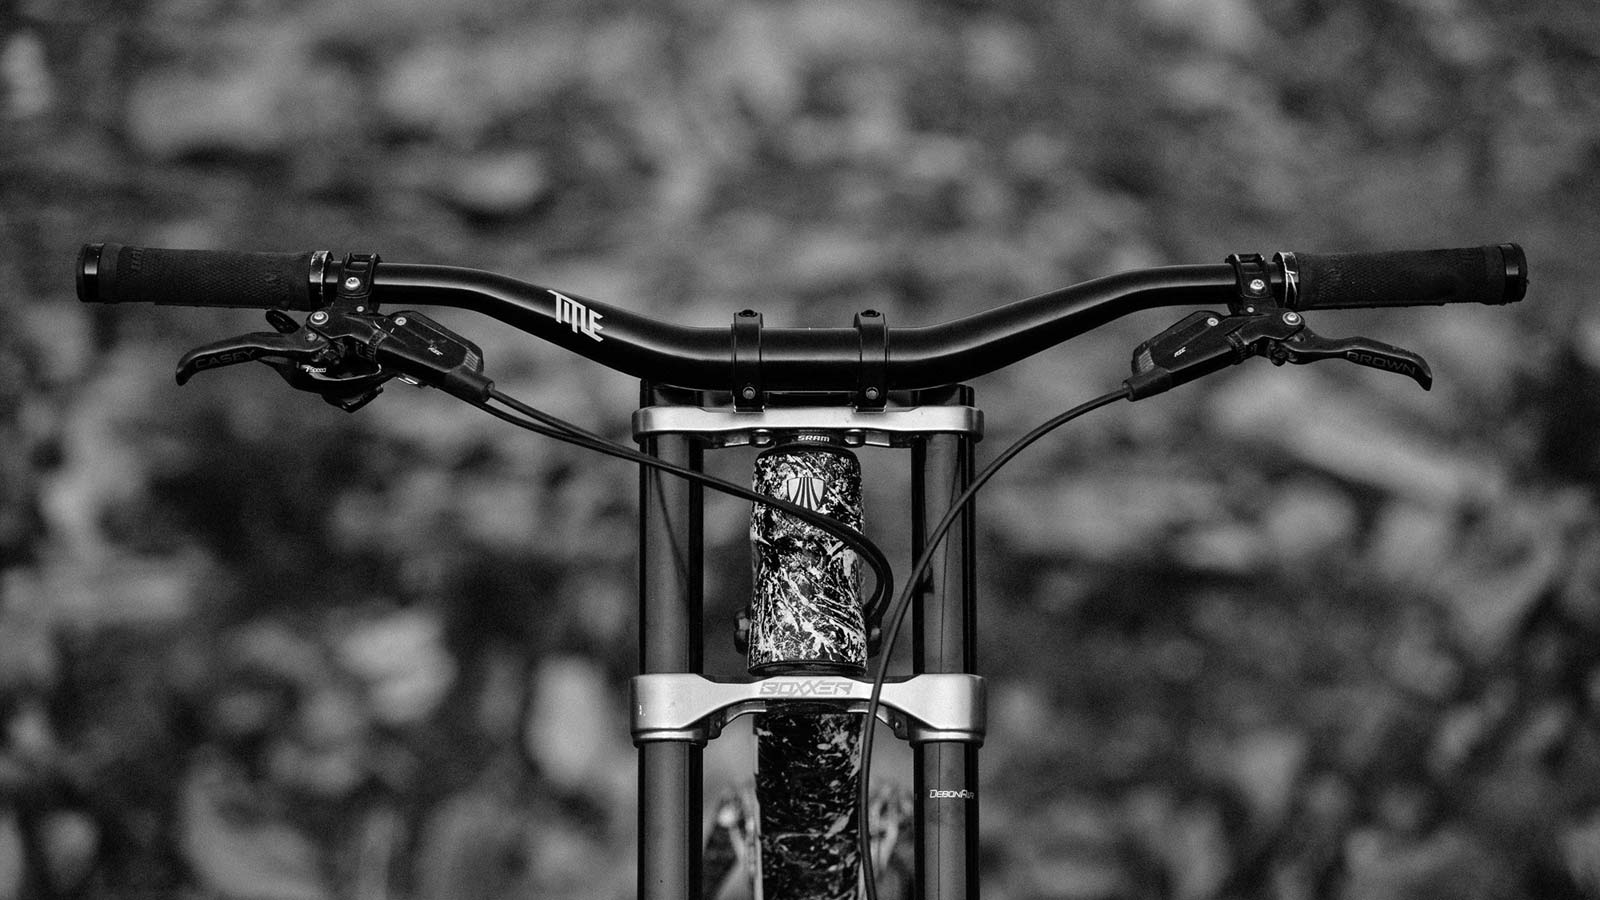 The Title Brand mountain bike components, all-mountain DH freeride-ready cockpit components and wheels by Brett Rheeder